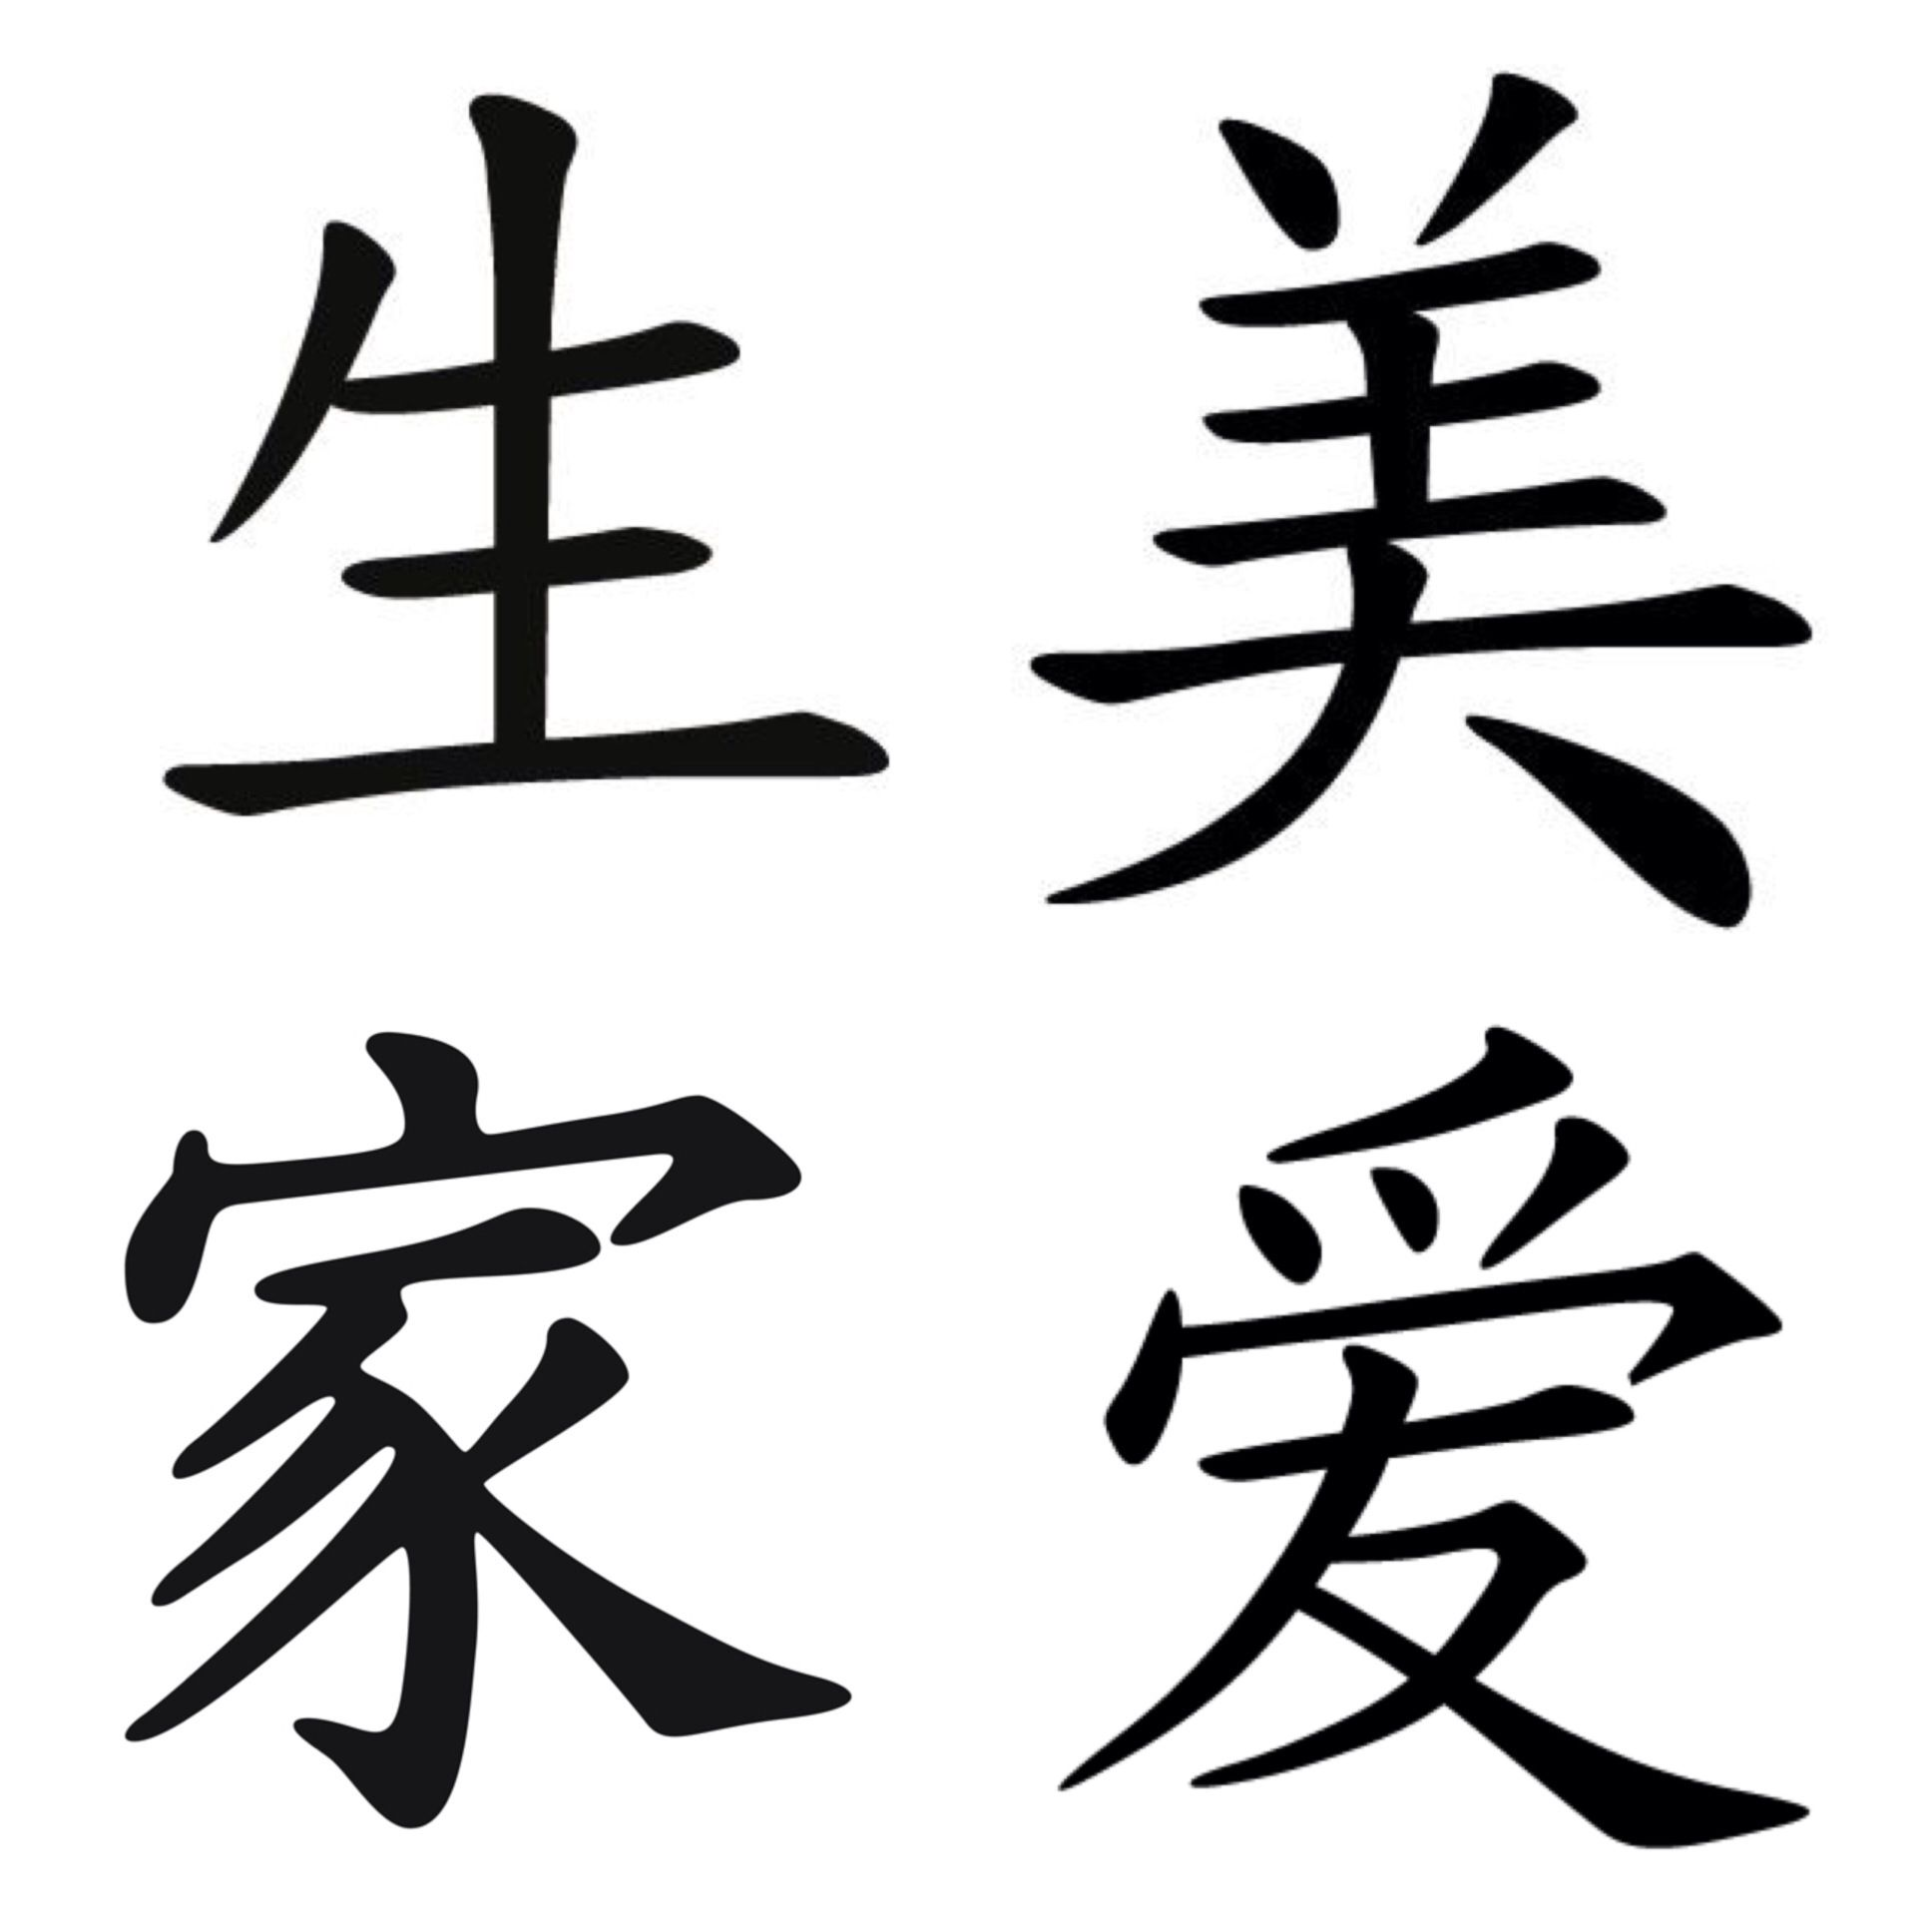 Cantonese written in traditional chinese left and simplified cantonese written in traditional chinese left and simplified chinese right characters spoken within guangzhou historically canton and its vi biocorpaavc